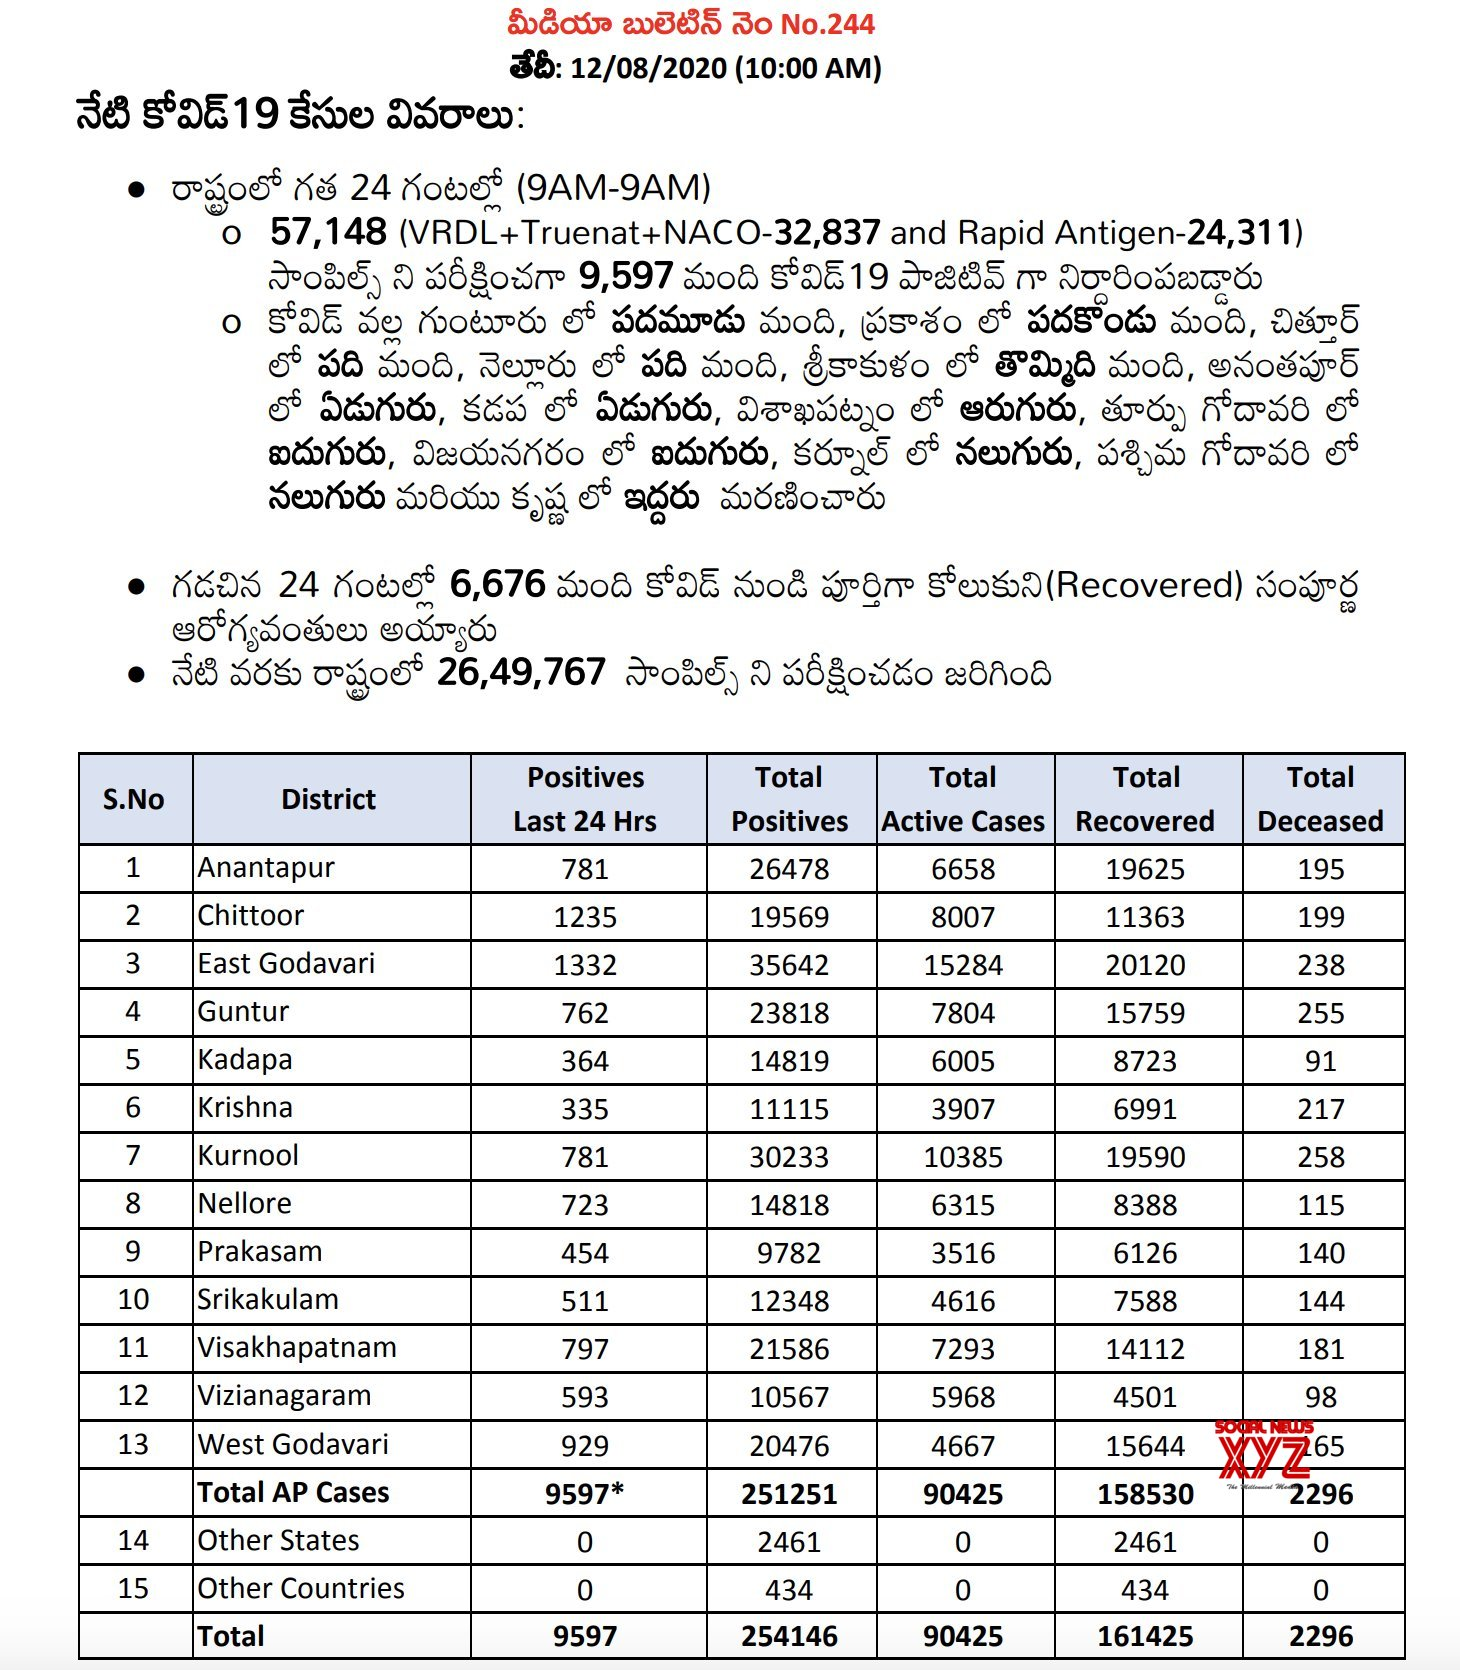 Andhra Pradesh Has 9,597 Positive Cases And The Total Positive Cases In The State Increased To 254,146 As Of 12th August 10 AM